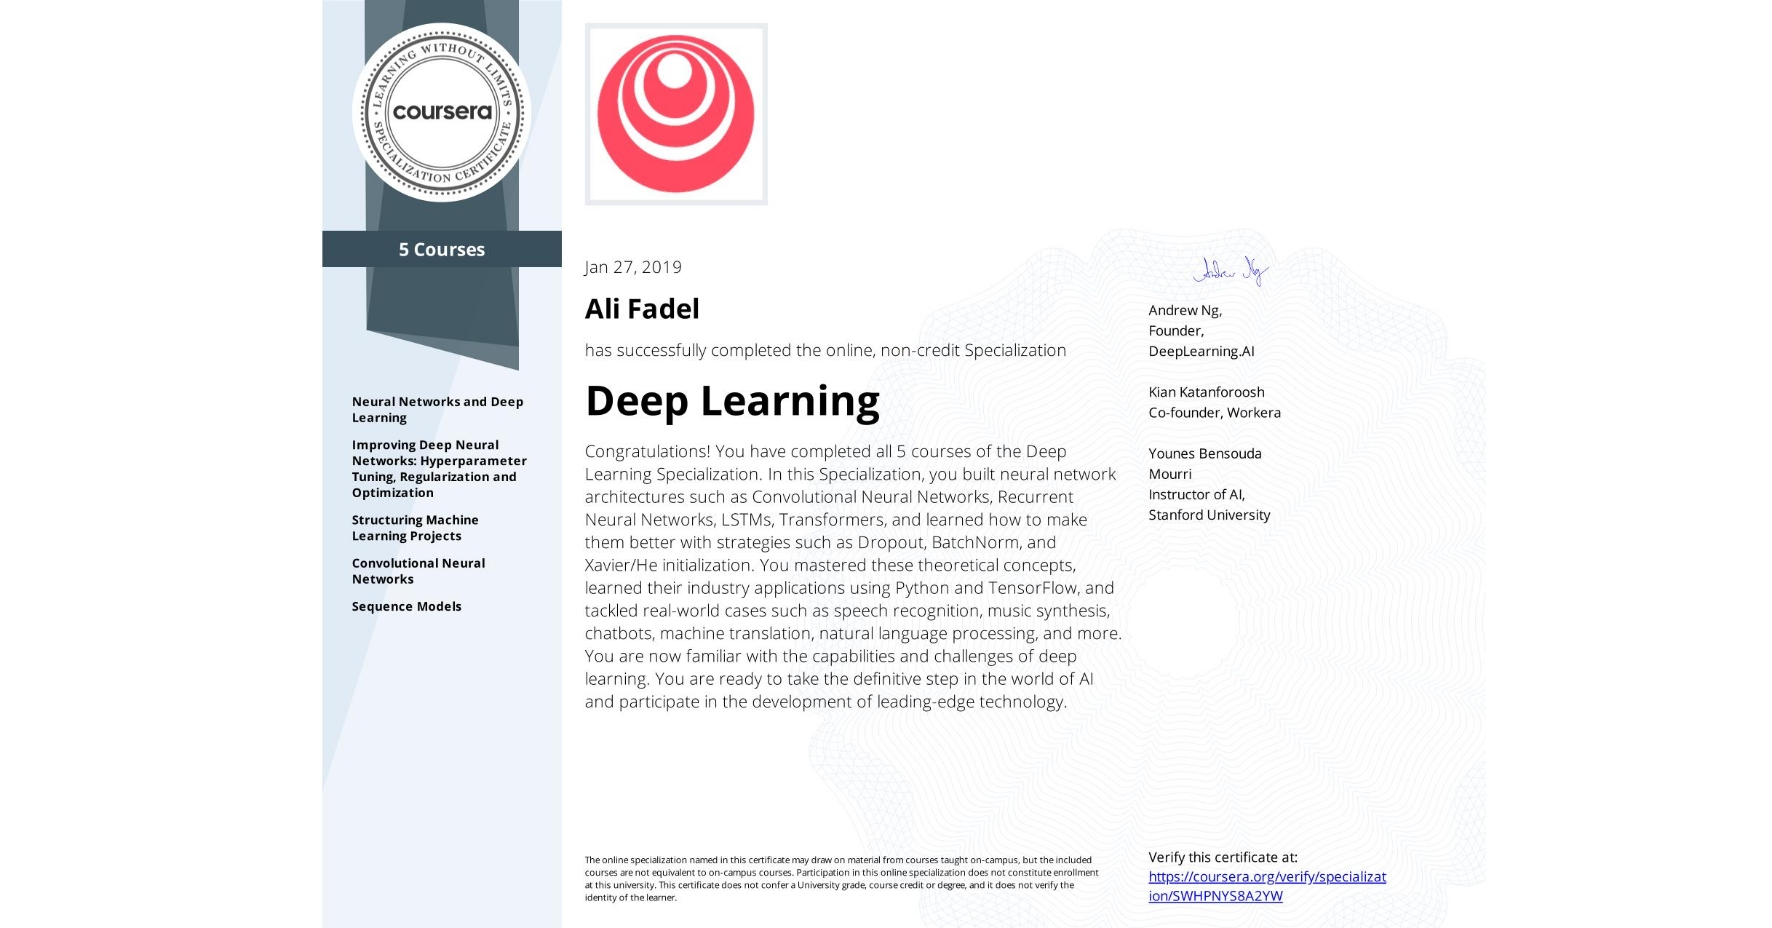 View certificate for Ali Fadel, Deep Learning, offered through Coursera. Congratulations! You have completed all 5 courses of the Deep Learning Specialization.  In this Specialization, you built neural network architectures such as Convolutional Neural Networks, Recurrent Neural Networks, LSTMs, Transformers, and learned how to make them better with strategies such as Dropout, BatchNorm, and Xavier/He initialization. You mastered these theoretical concepts, learned their industry applications using Python and TensorFlow, and tackled real-world cases such as speech recognition, music synthesis, chatbots, machine translation, natural language processing, and more.  You are now familiar with the capabilities and challenges of deep learning. You are ready to take the definitive step in the world of AI and participate in the development of leading-edge technology.